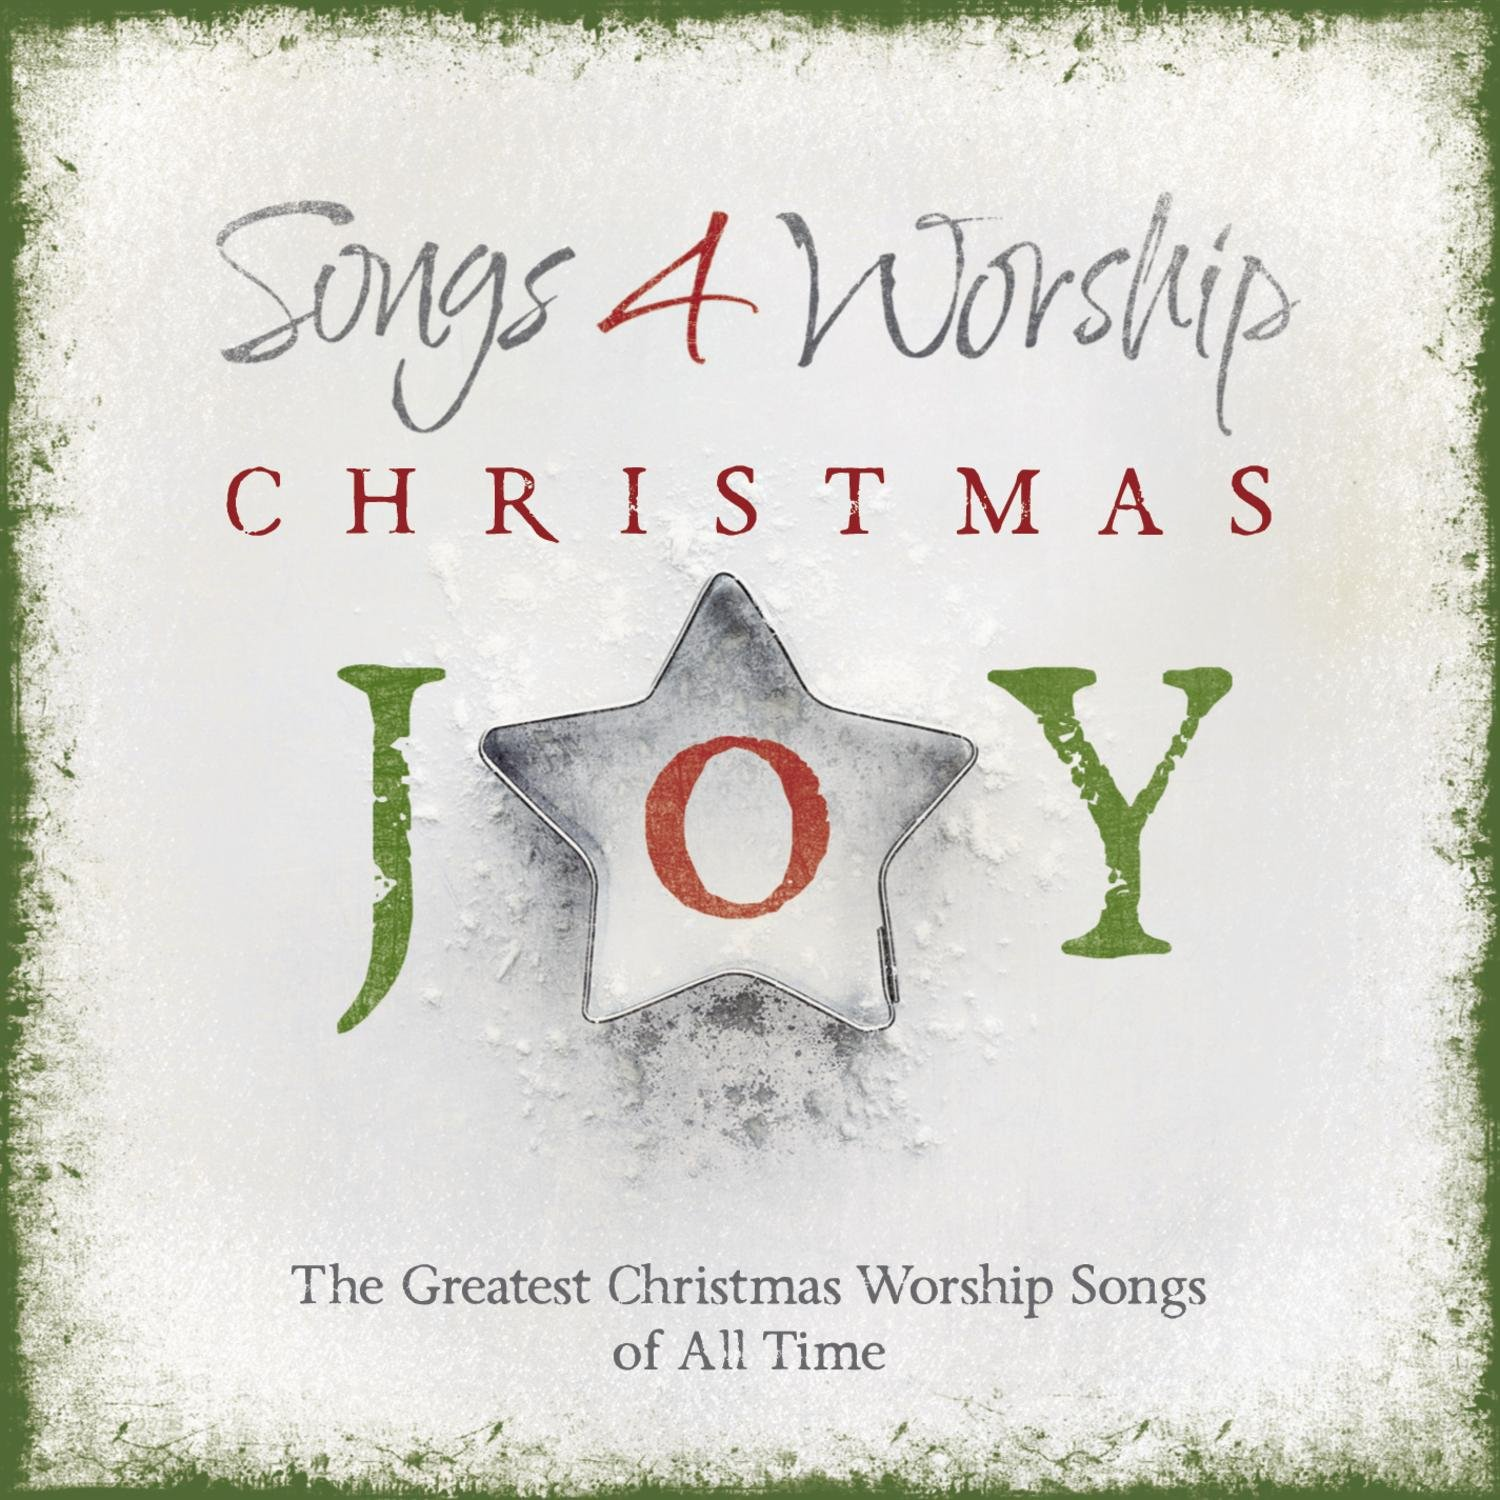 Various - Songs 4 Worship Christmas Joy - Amazon.com Music